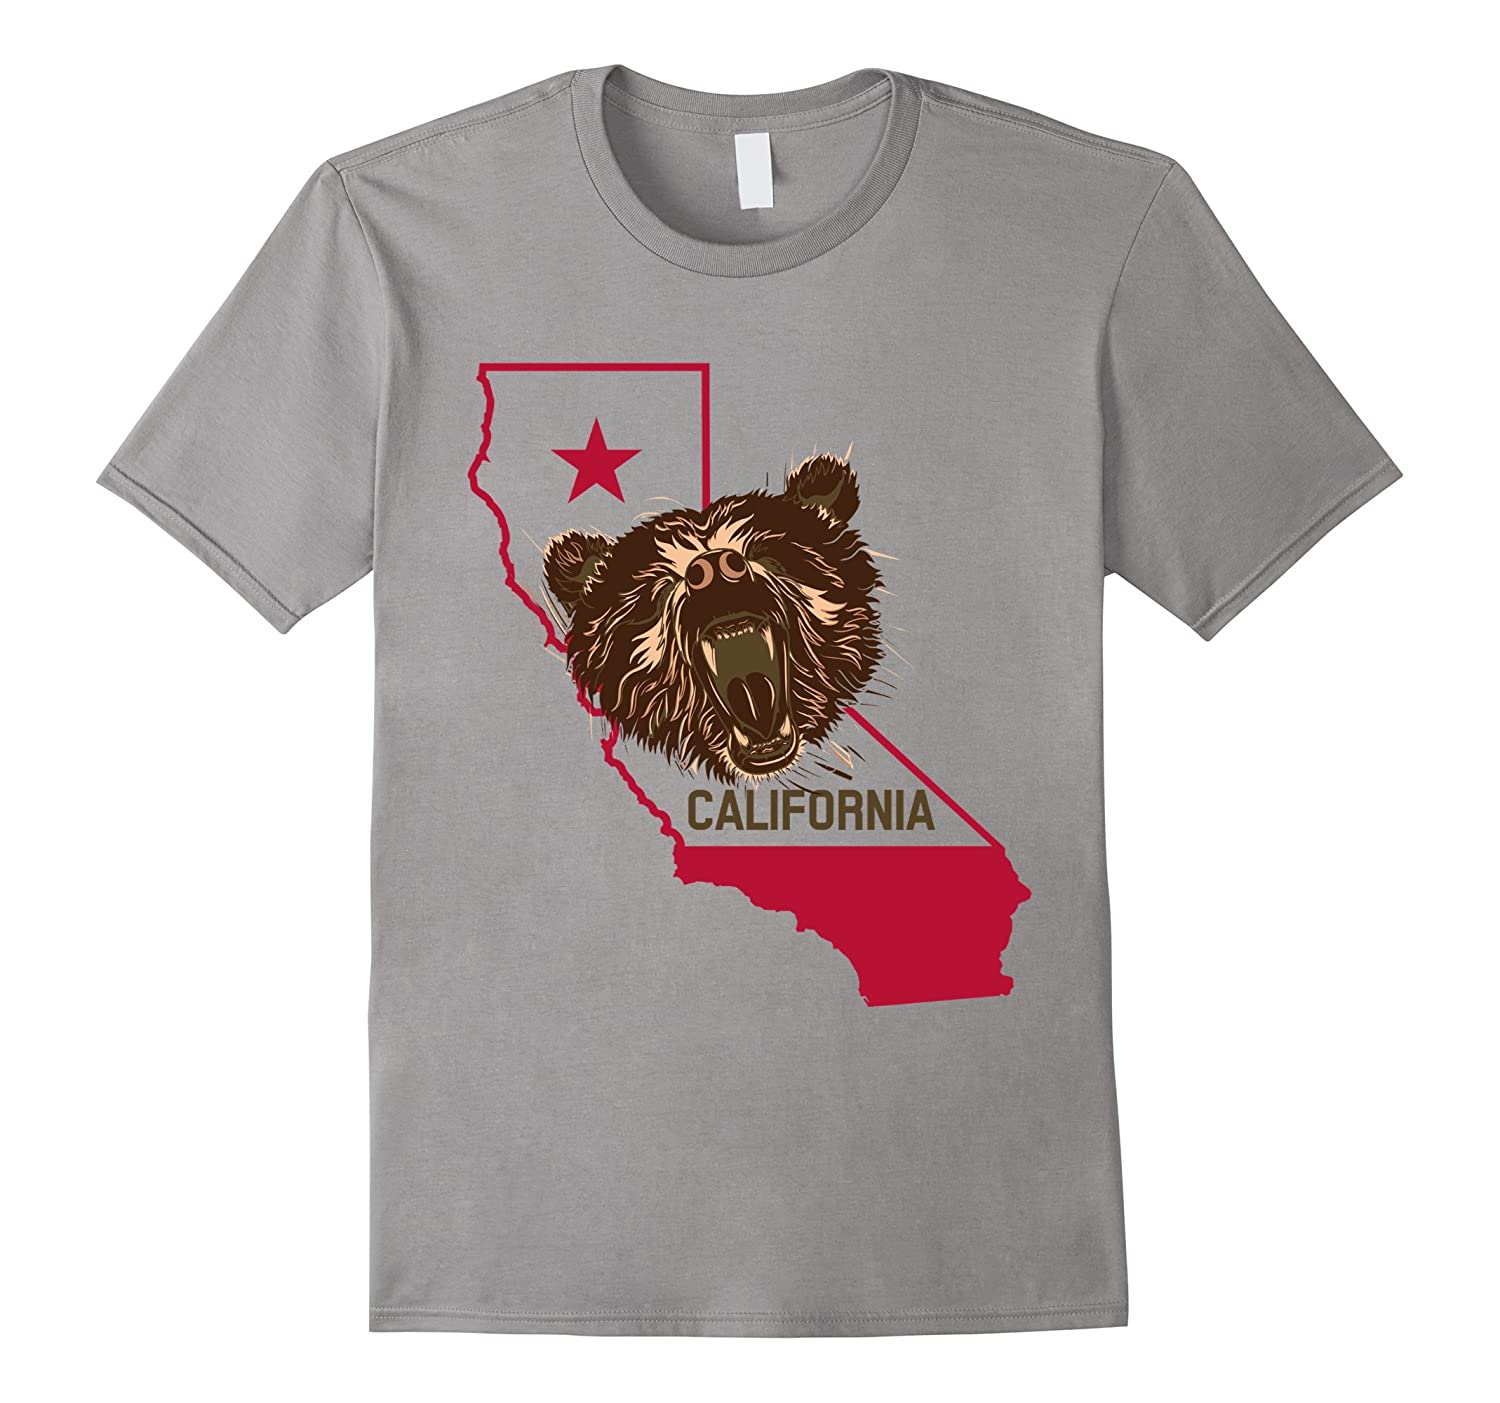 Bear Republic T-Shirt, California Independence Star Flag Tee-CL